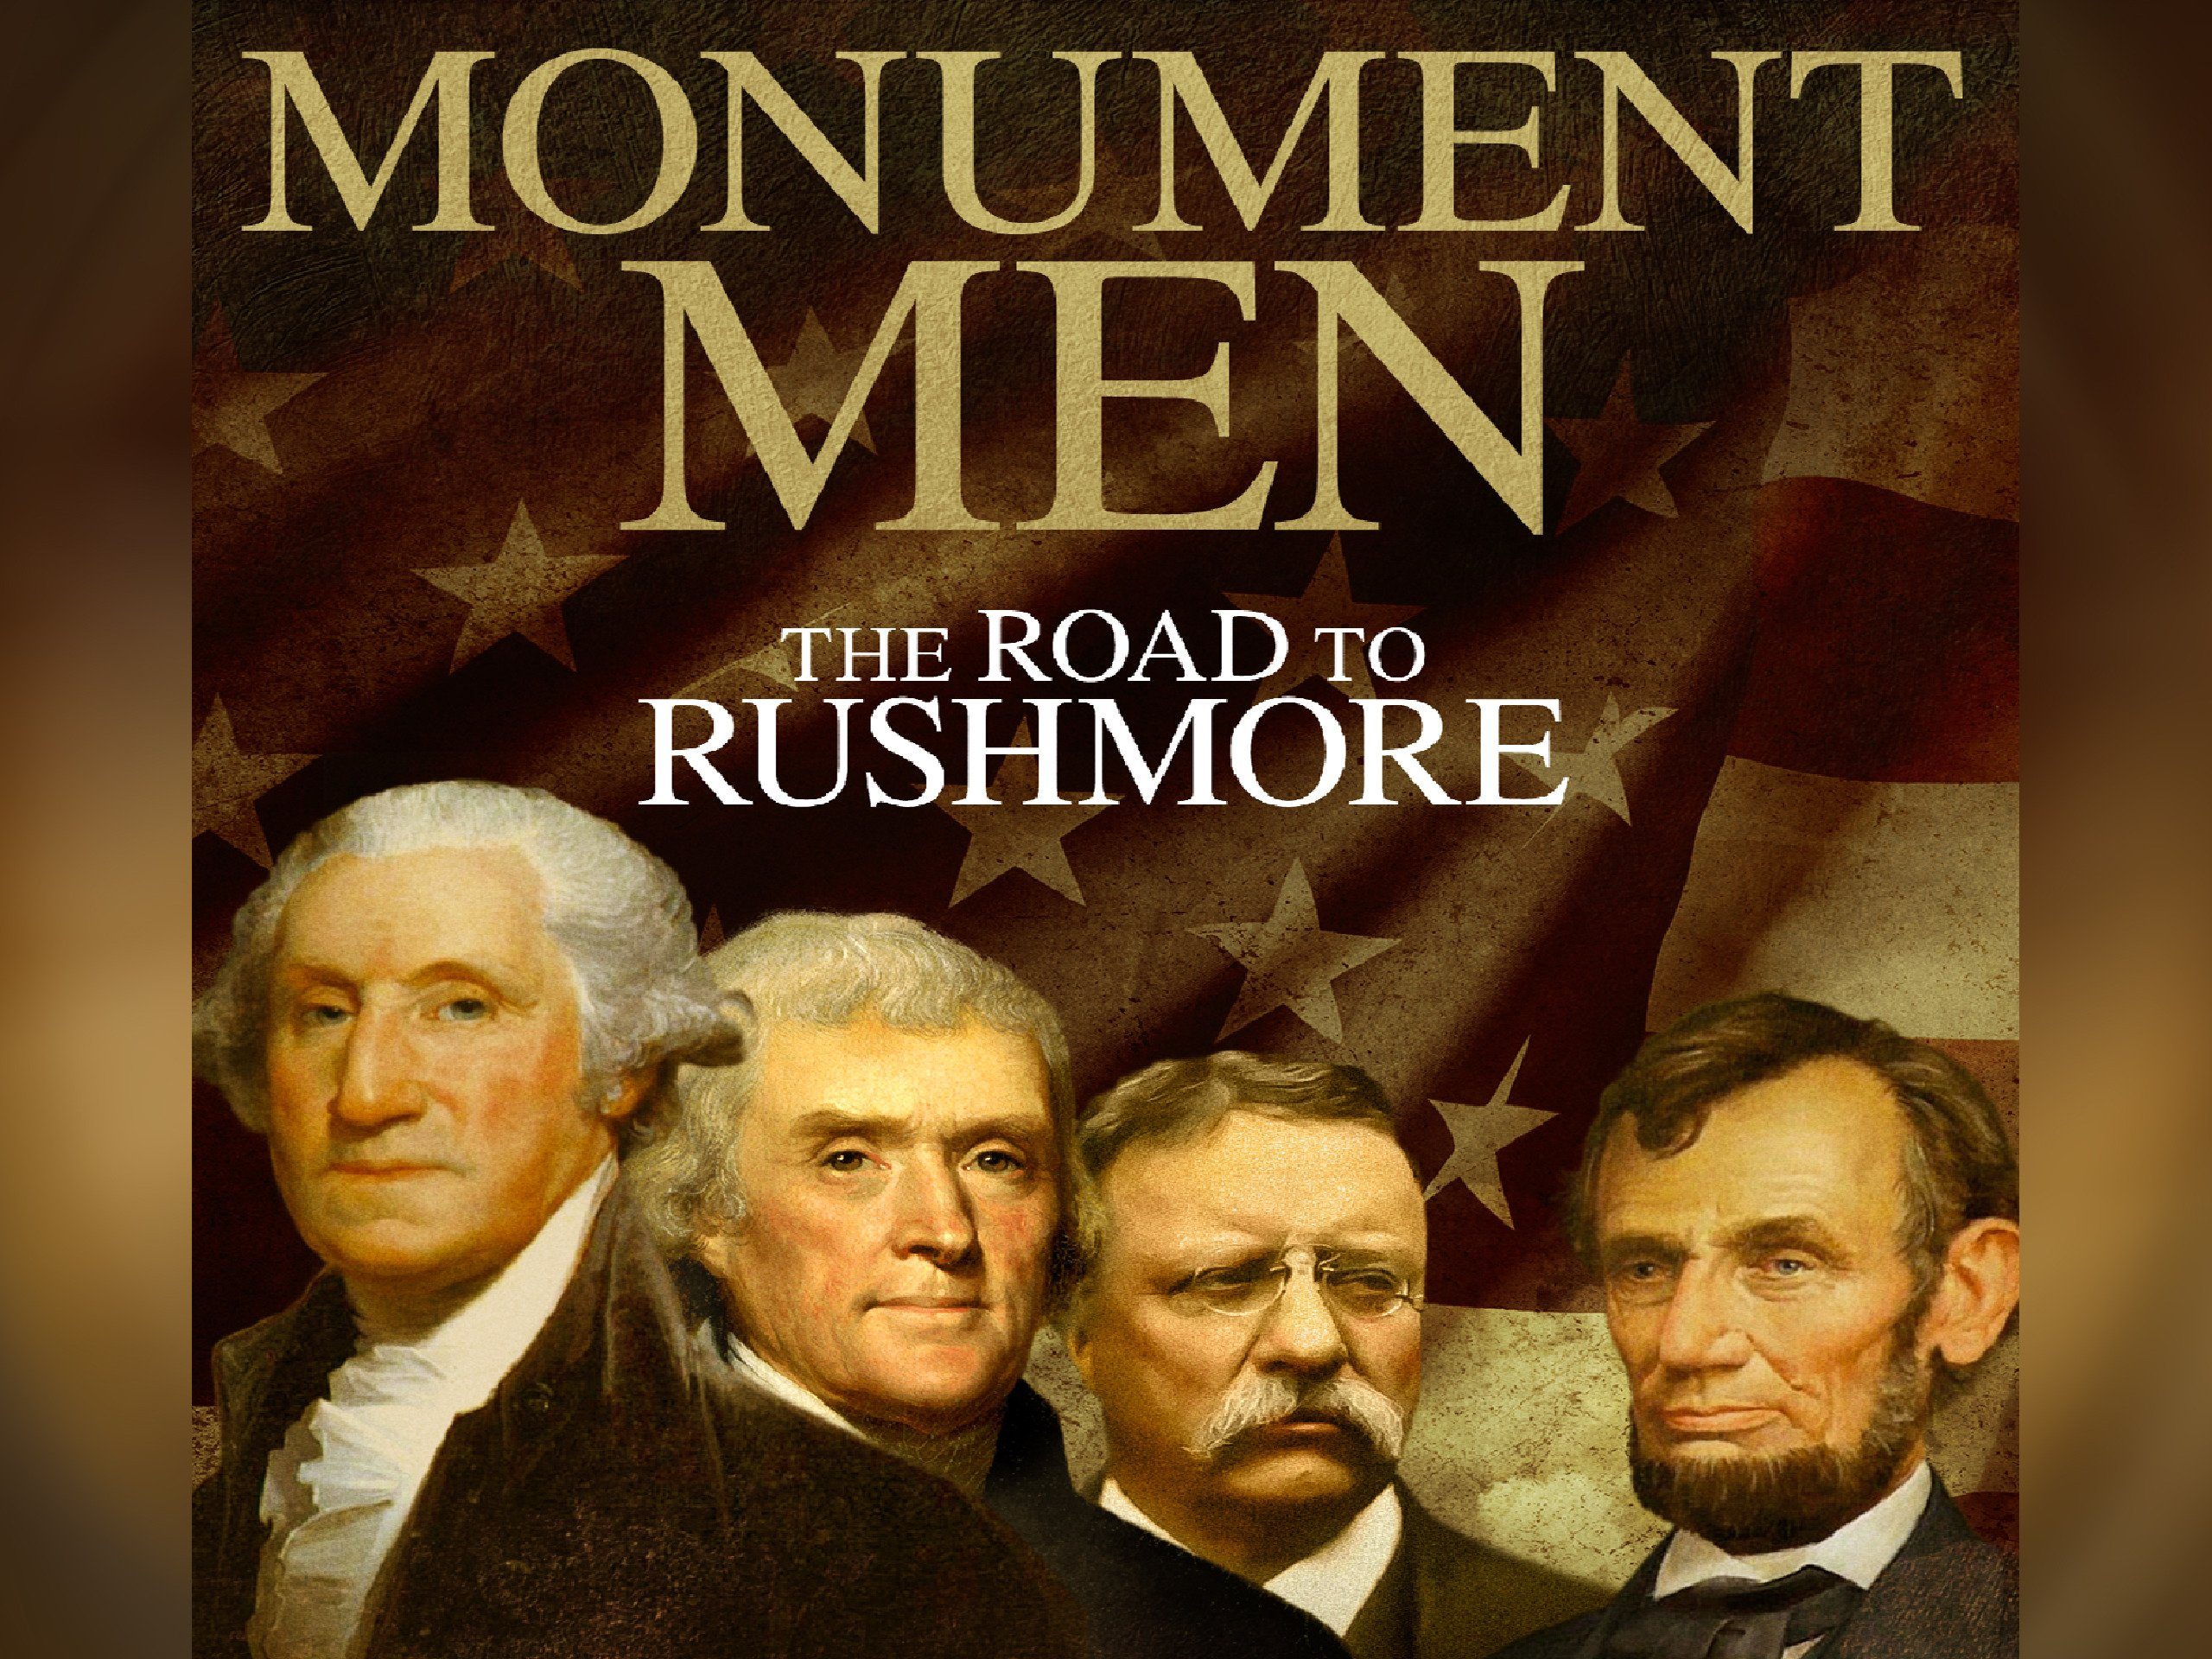 The Road to Rushmore